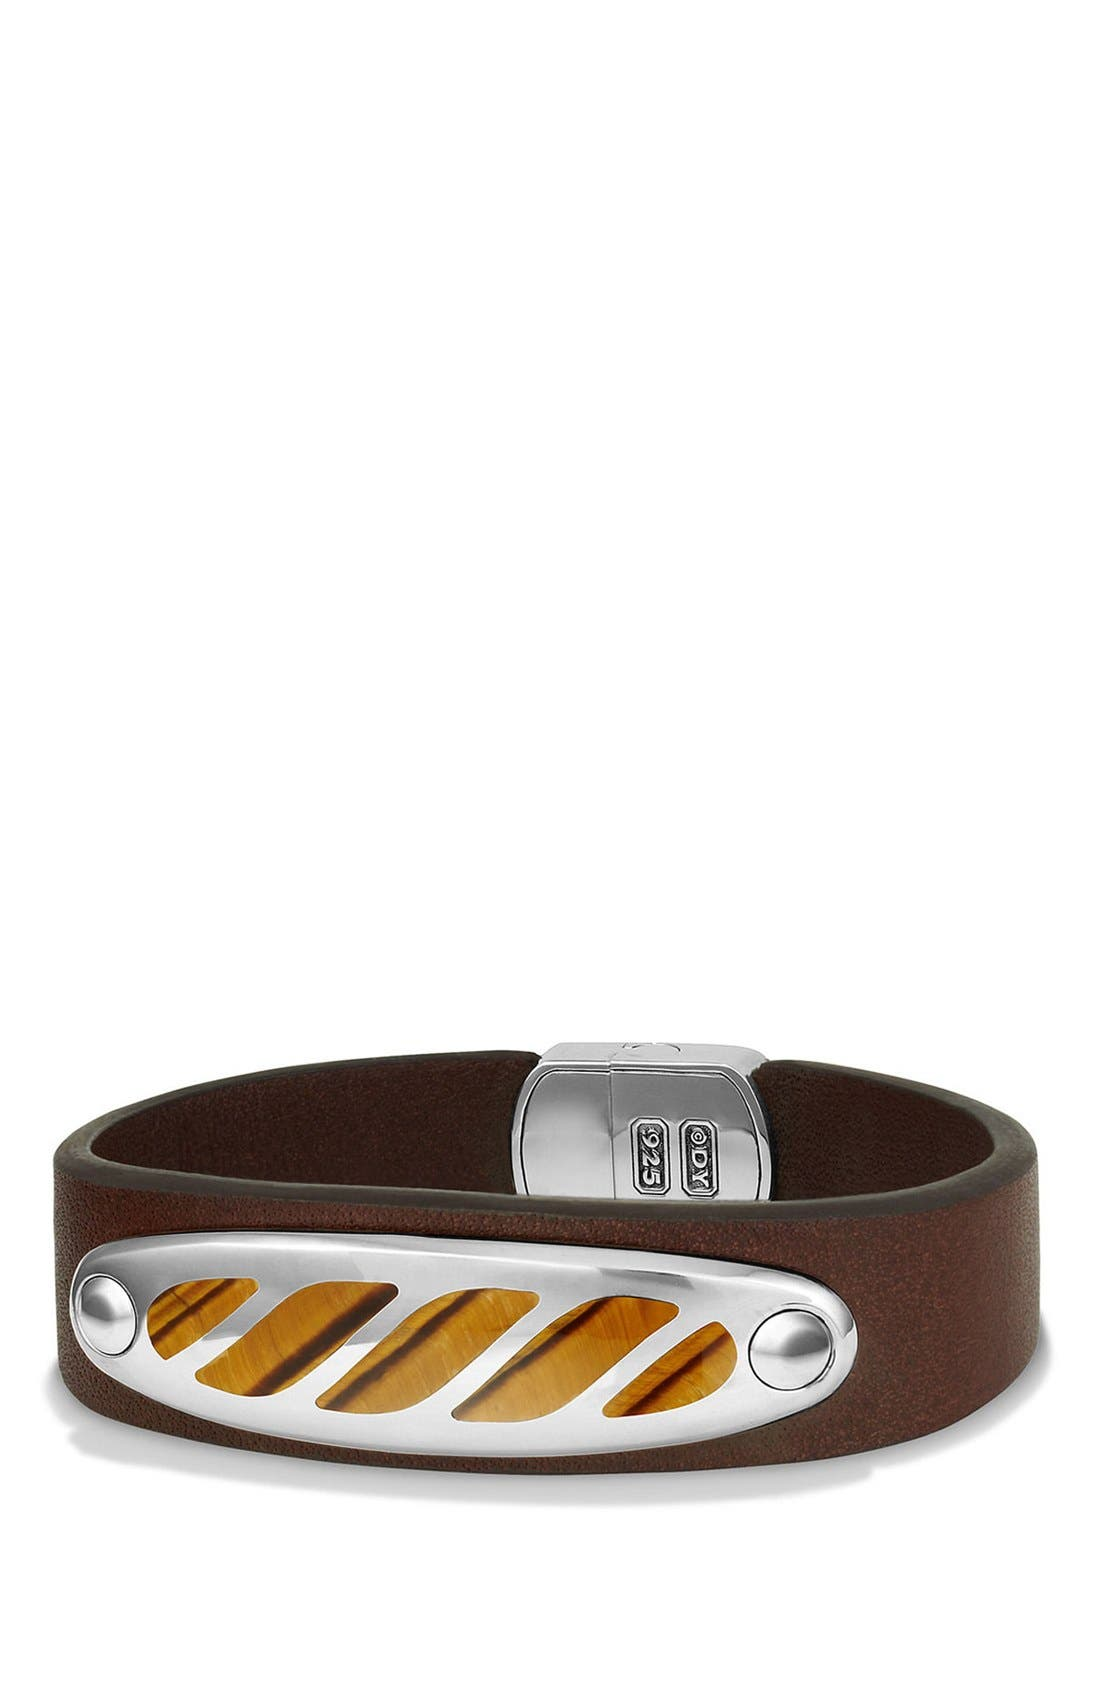 Main Image - David Yurman Graphic Cable Leather ID Bracelet